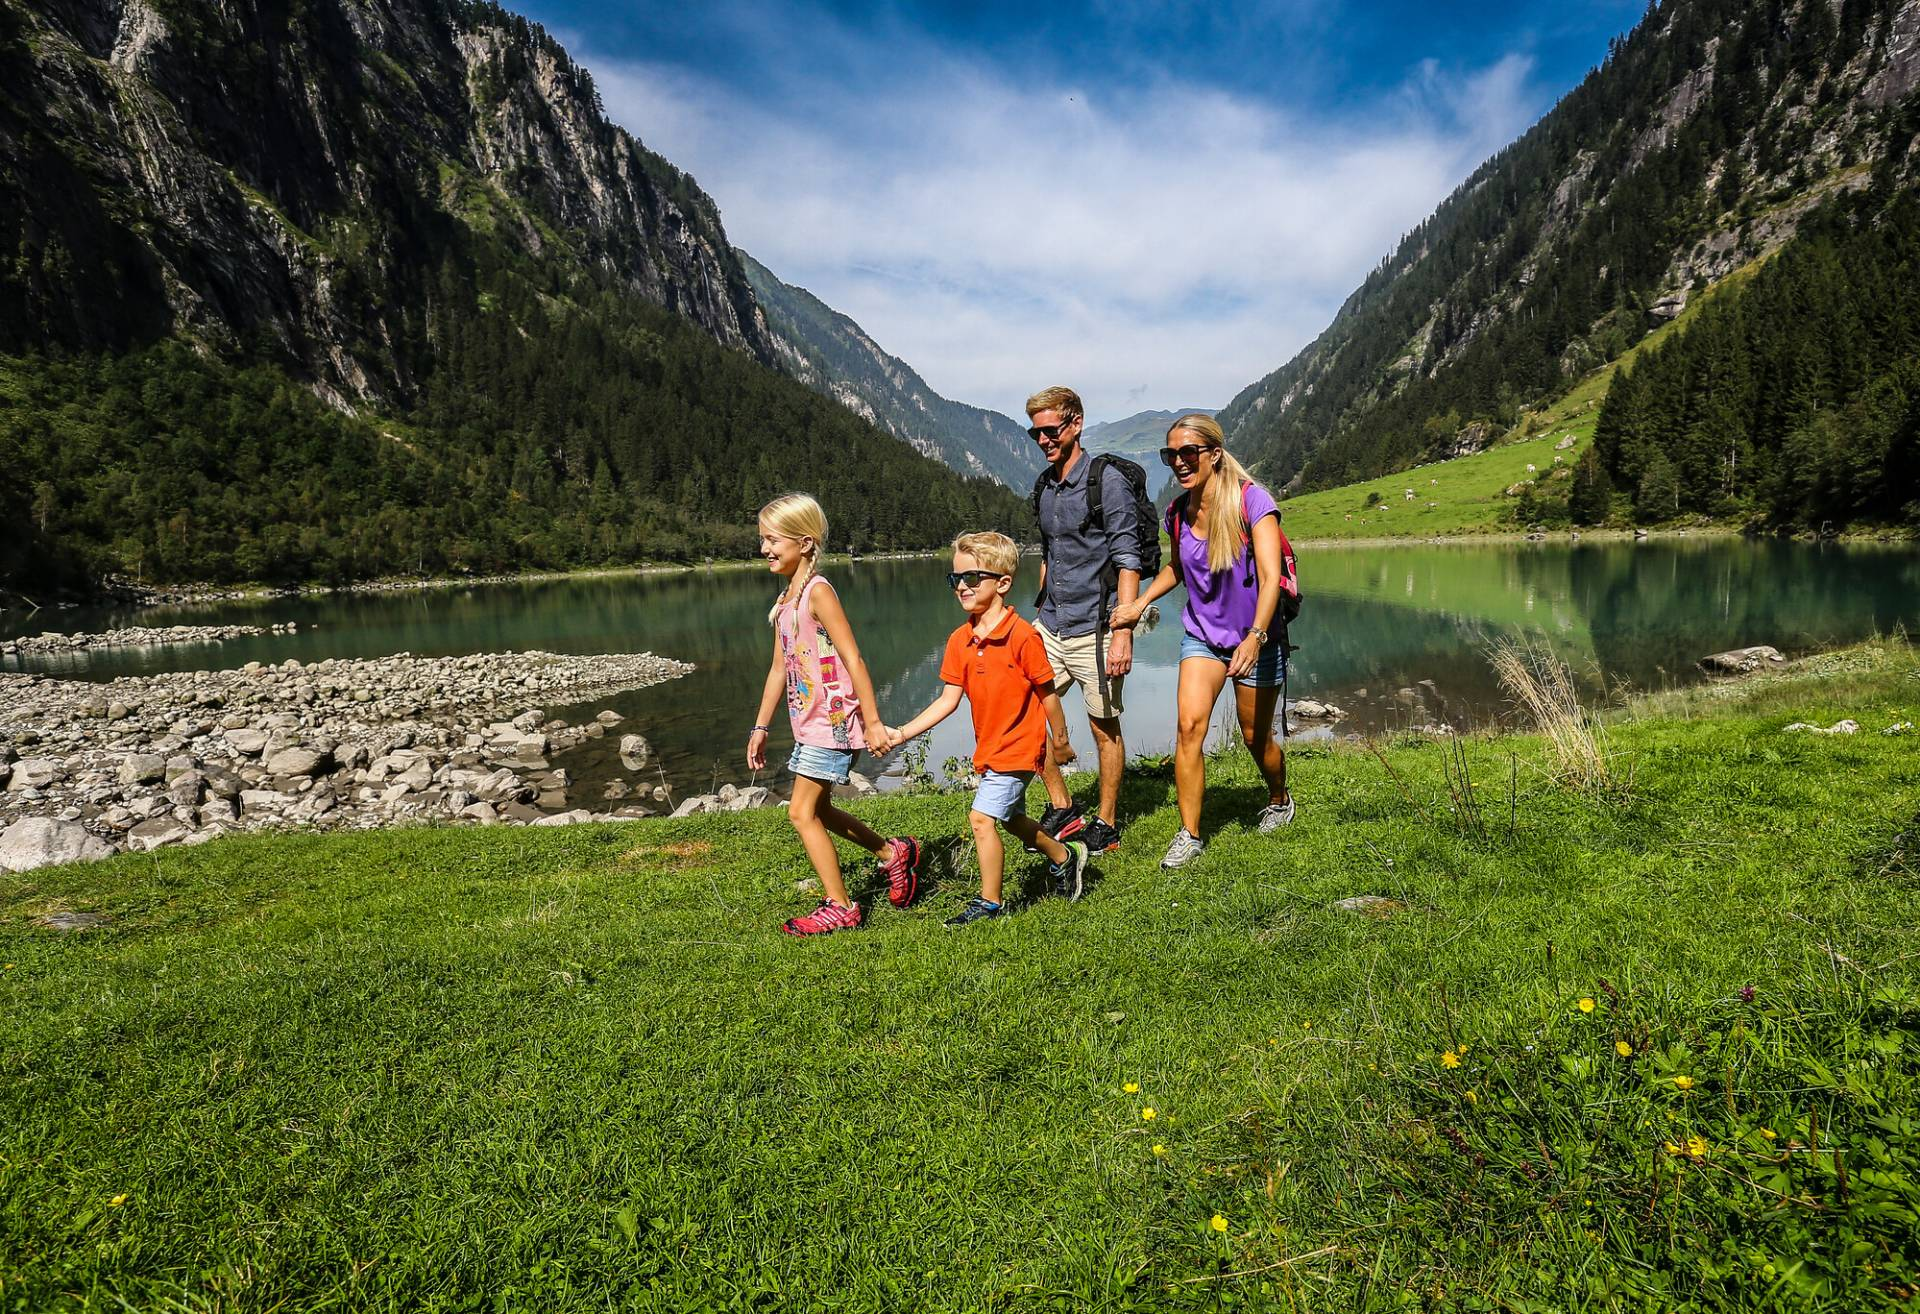 Family on the road in the mountains